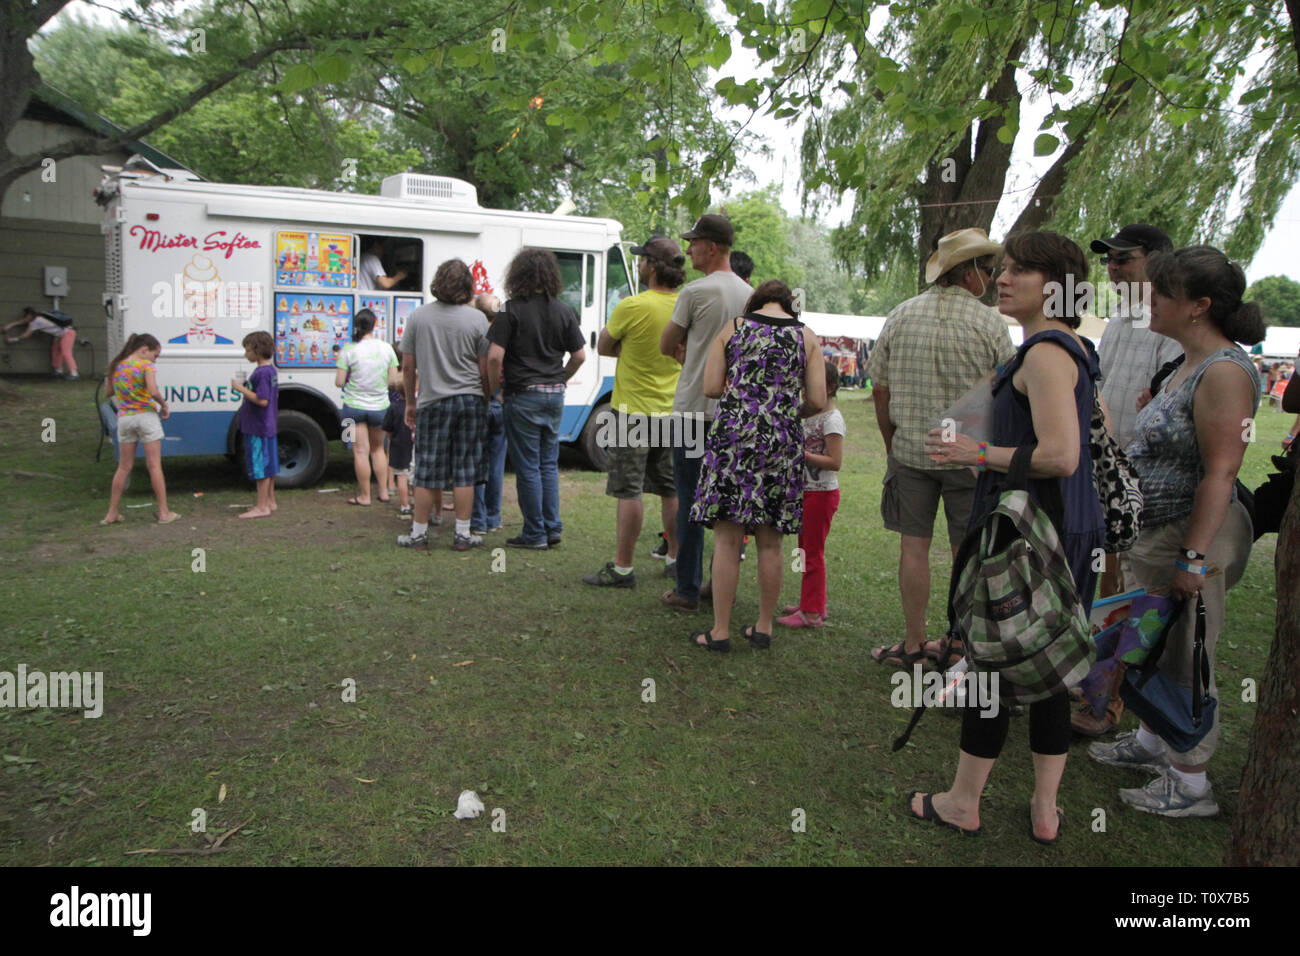 Concert goers are shown waiting in line for Mister Softee during an outdoor music festival. Stock Photo